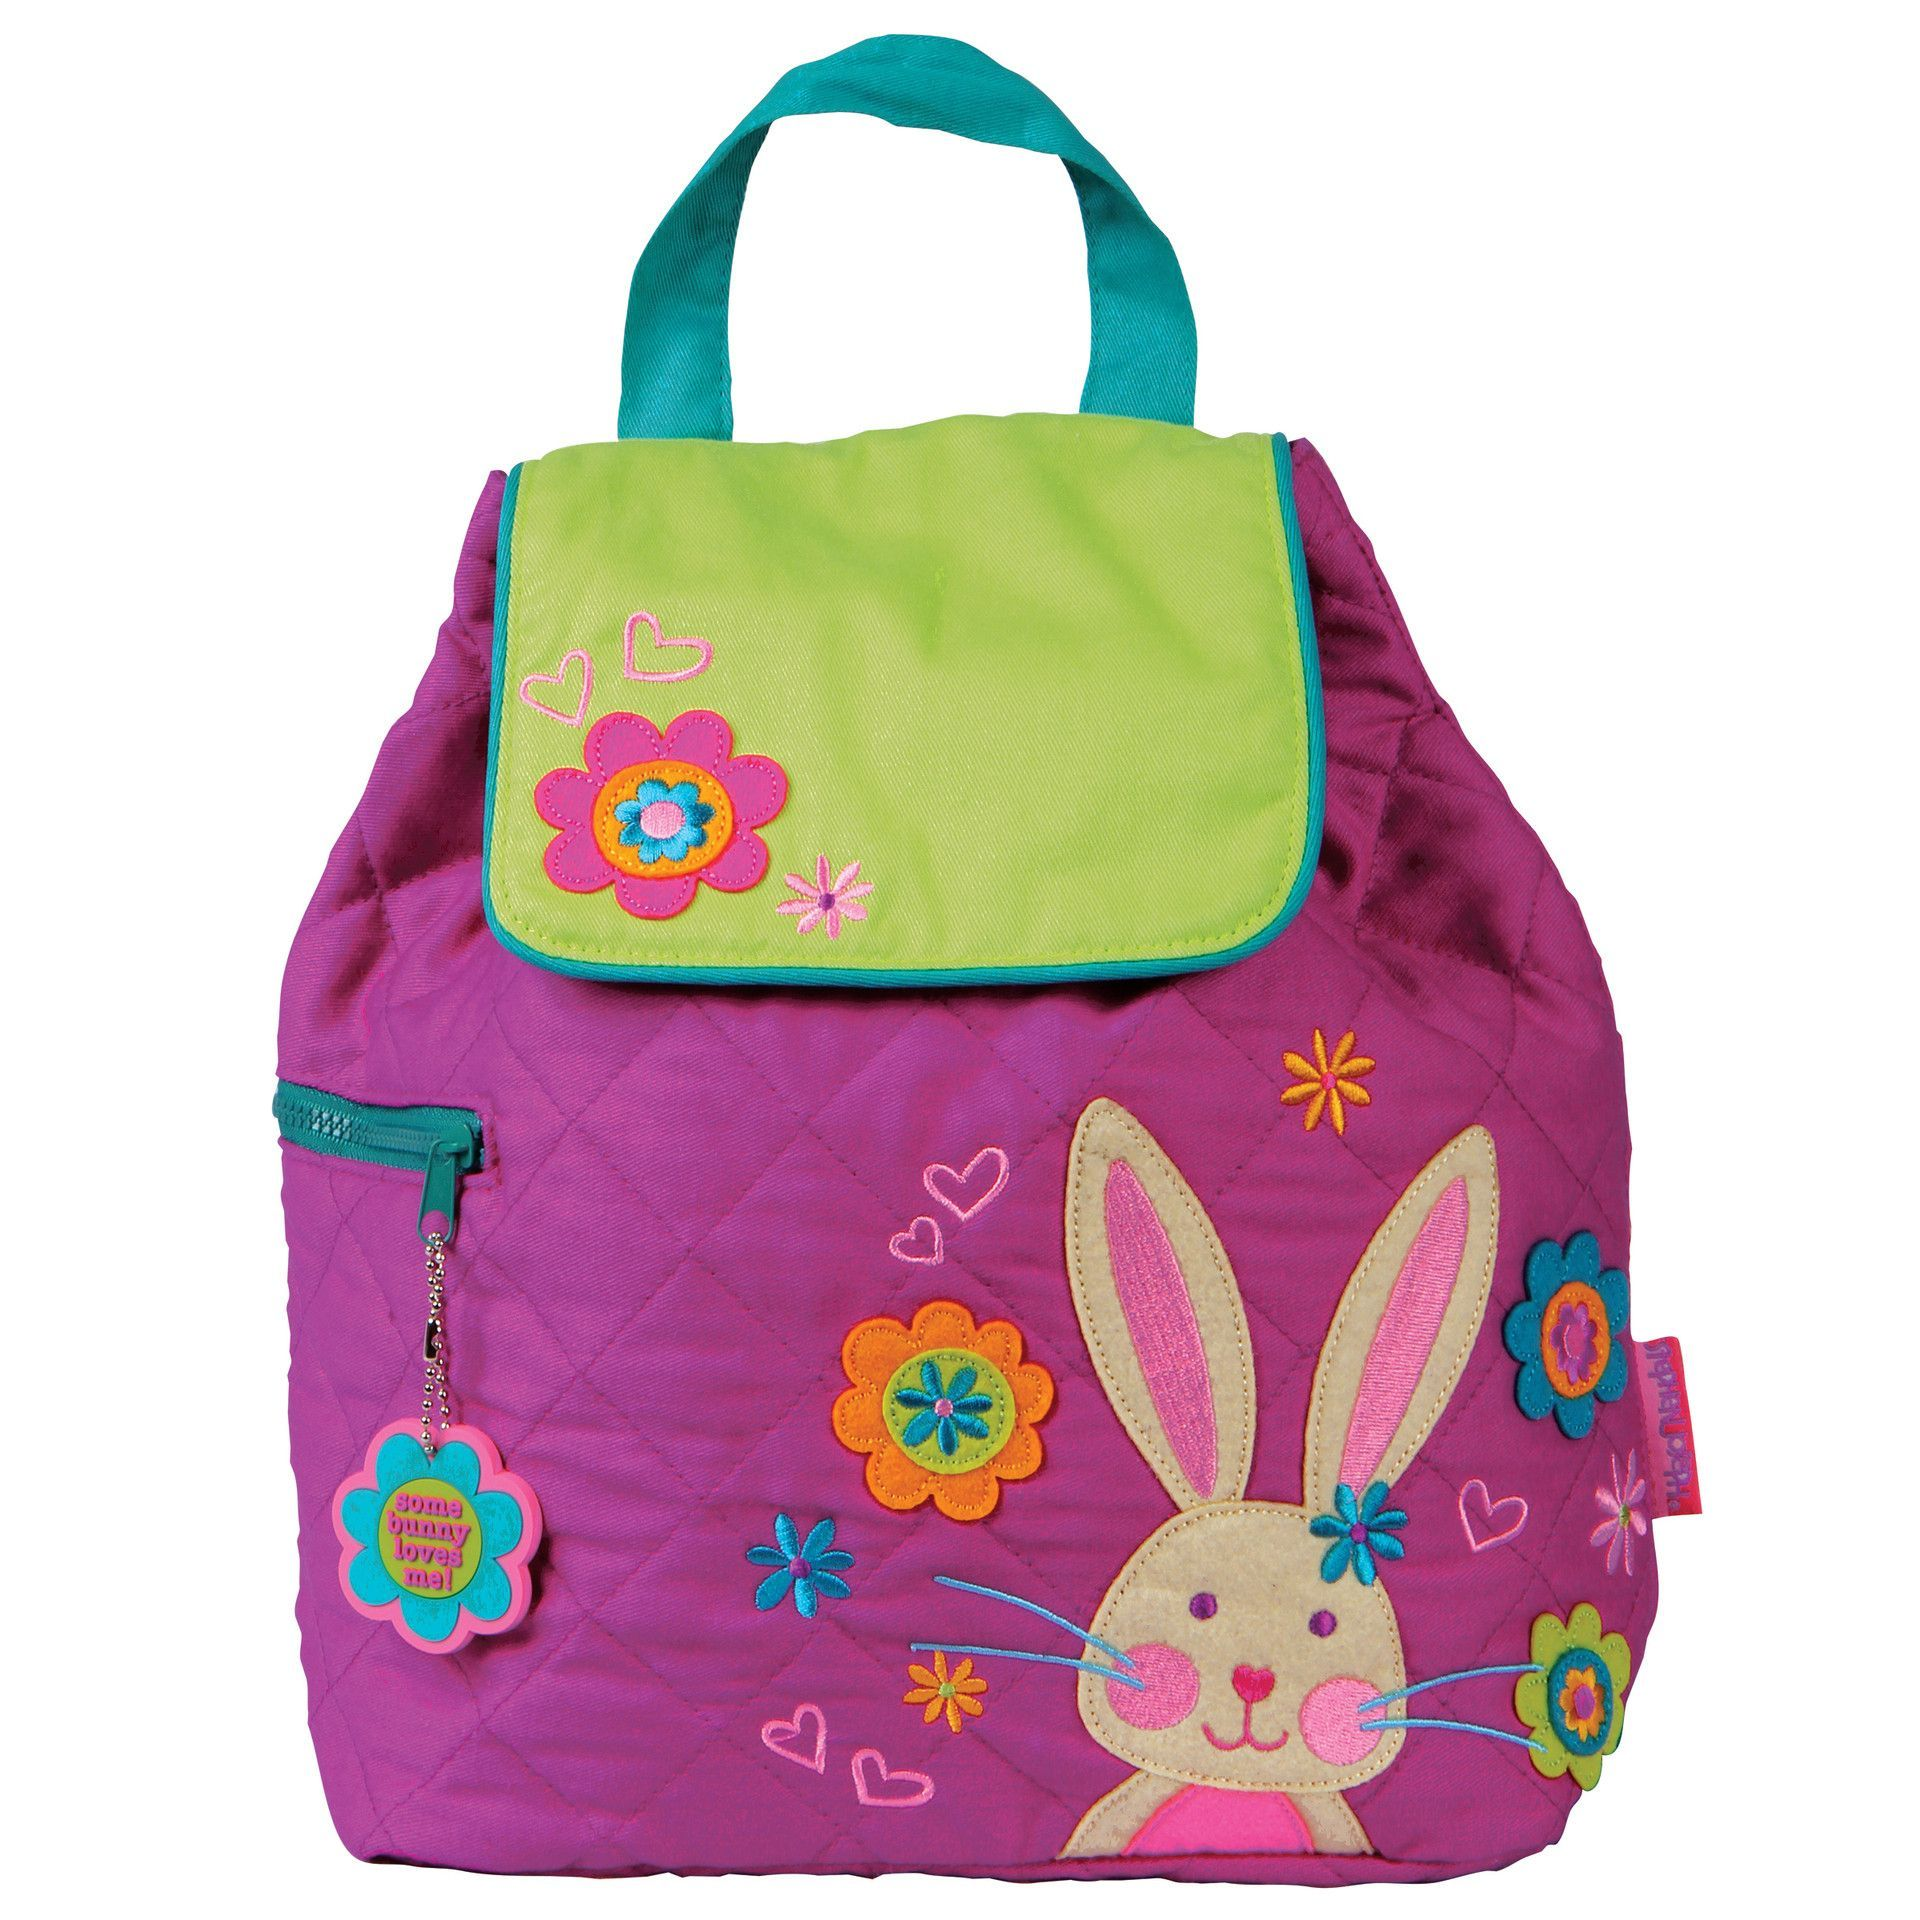 Stephen Joseph Kids Quilted Backpack - Bunny  f29f30bbdcb00